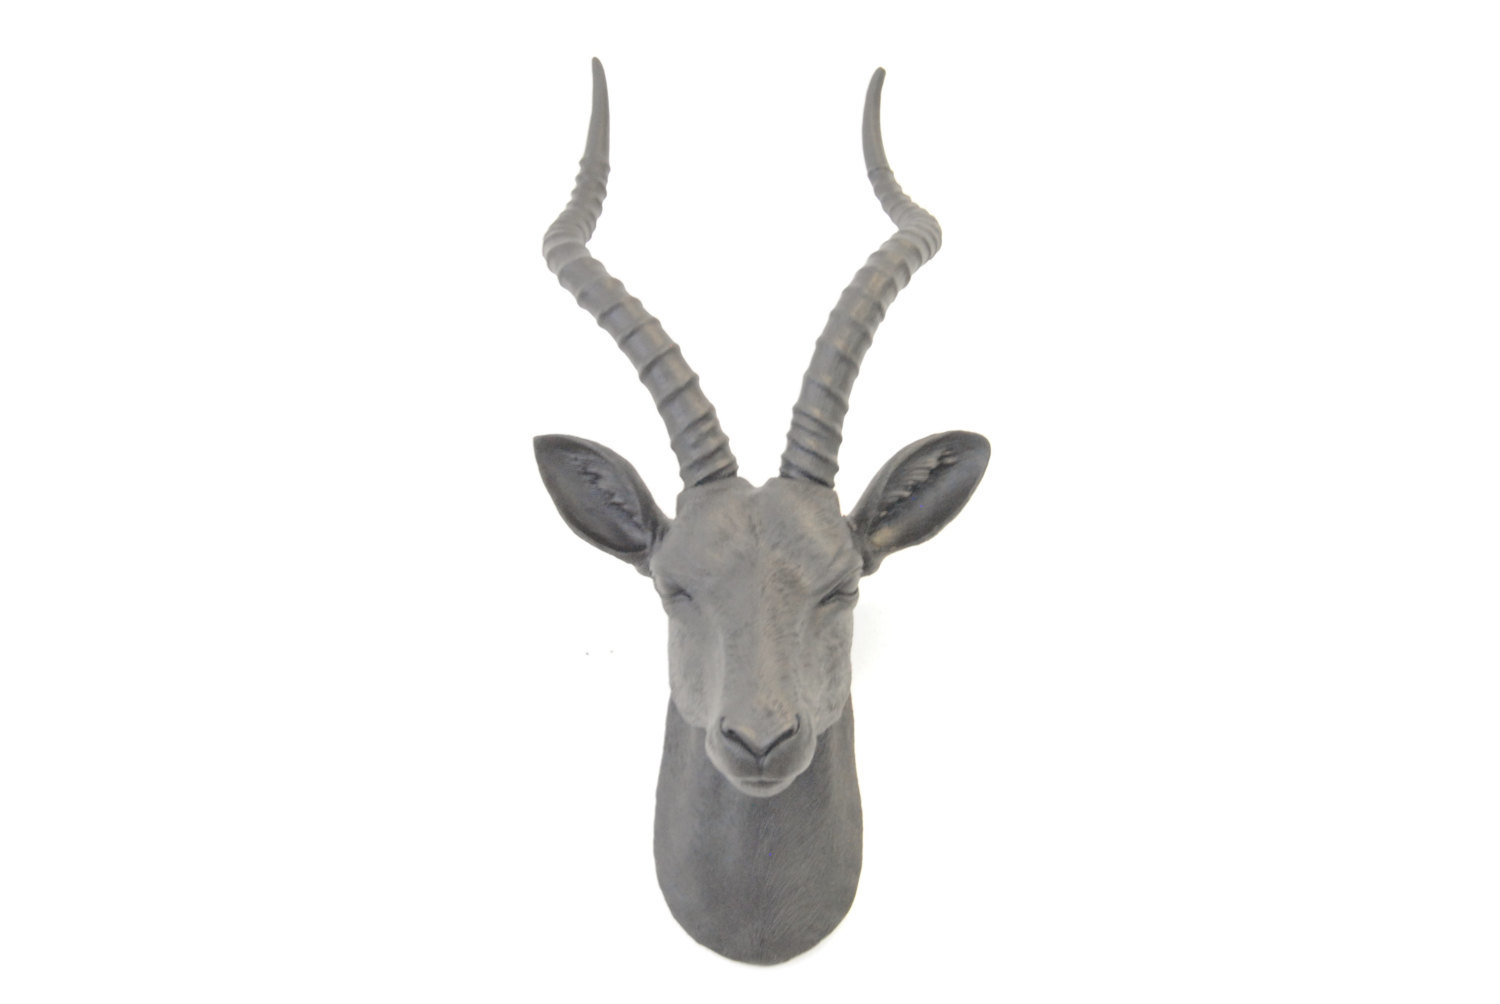 Widely Used Highlands Ranch The Templeton Wall Decor For Large Antelope Head Wall Décor & Reviews (View 20 of 20)